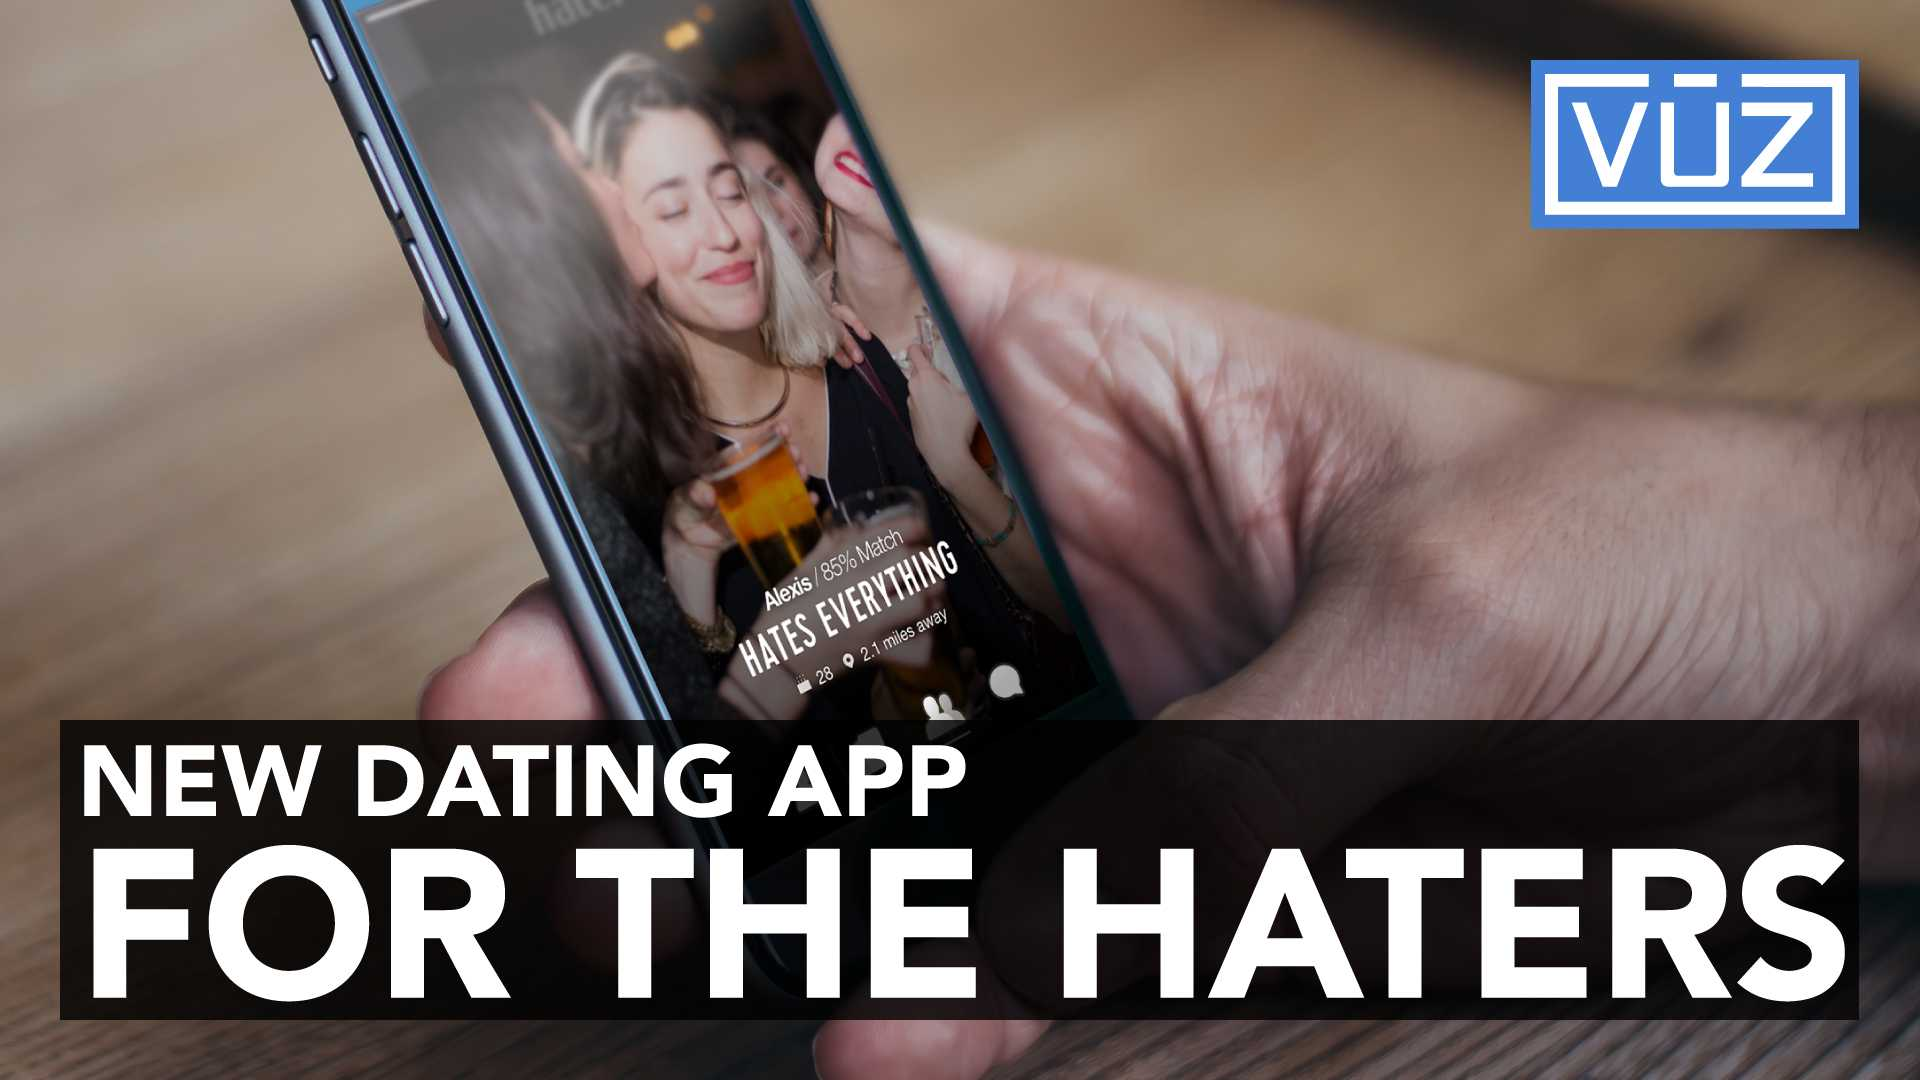 i hate gay dating apps Why i hate something you love: i despise dating apps the dating app interface condenses your personality to a handful of photos and a witty caption.